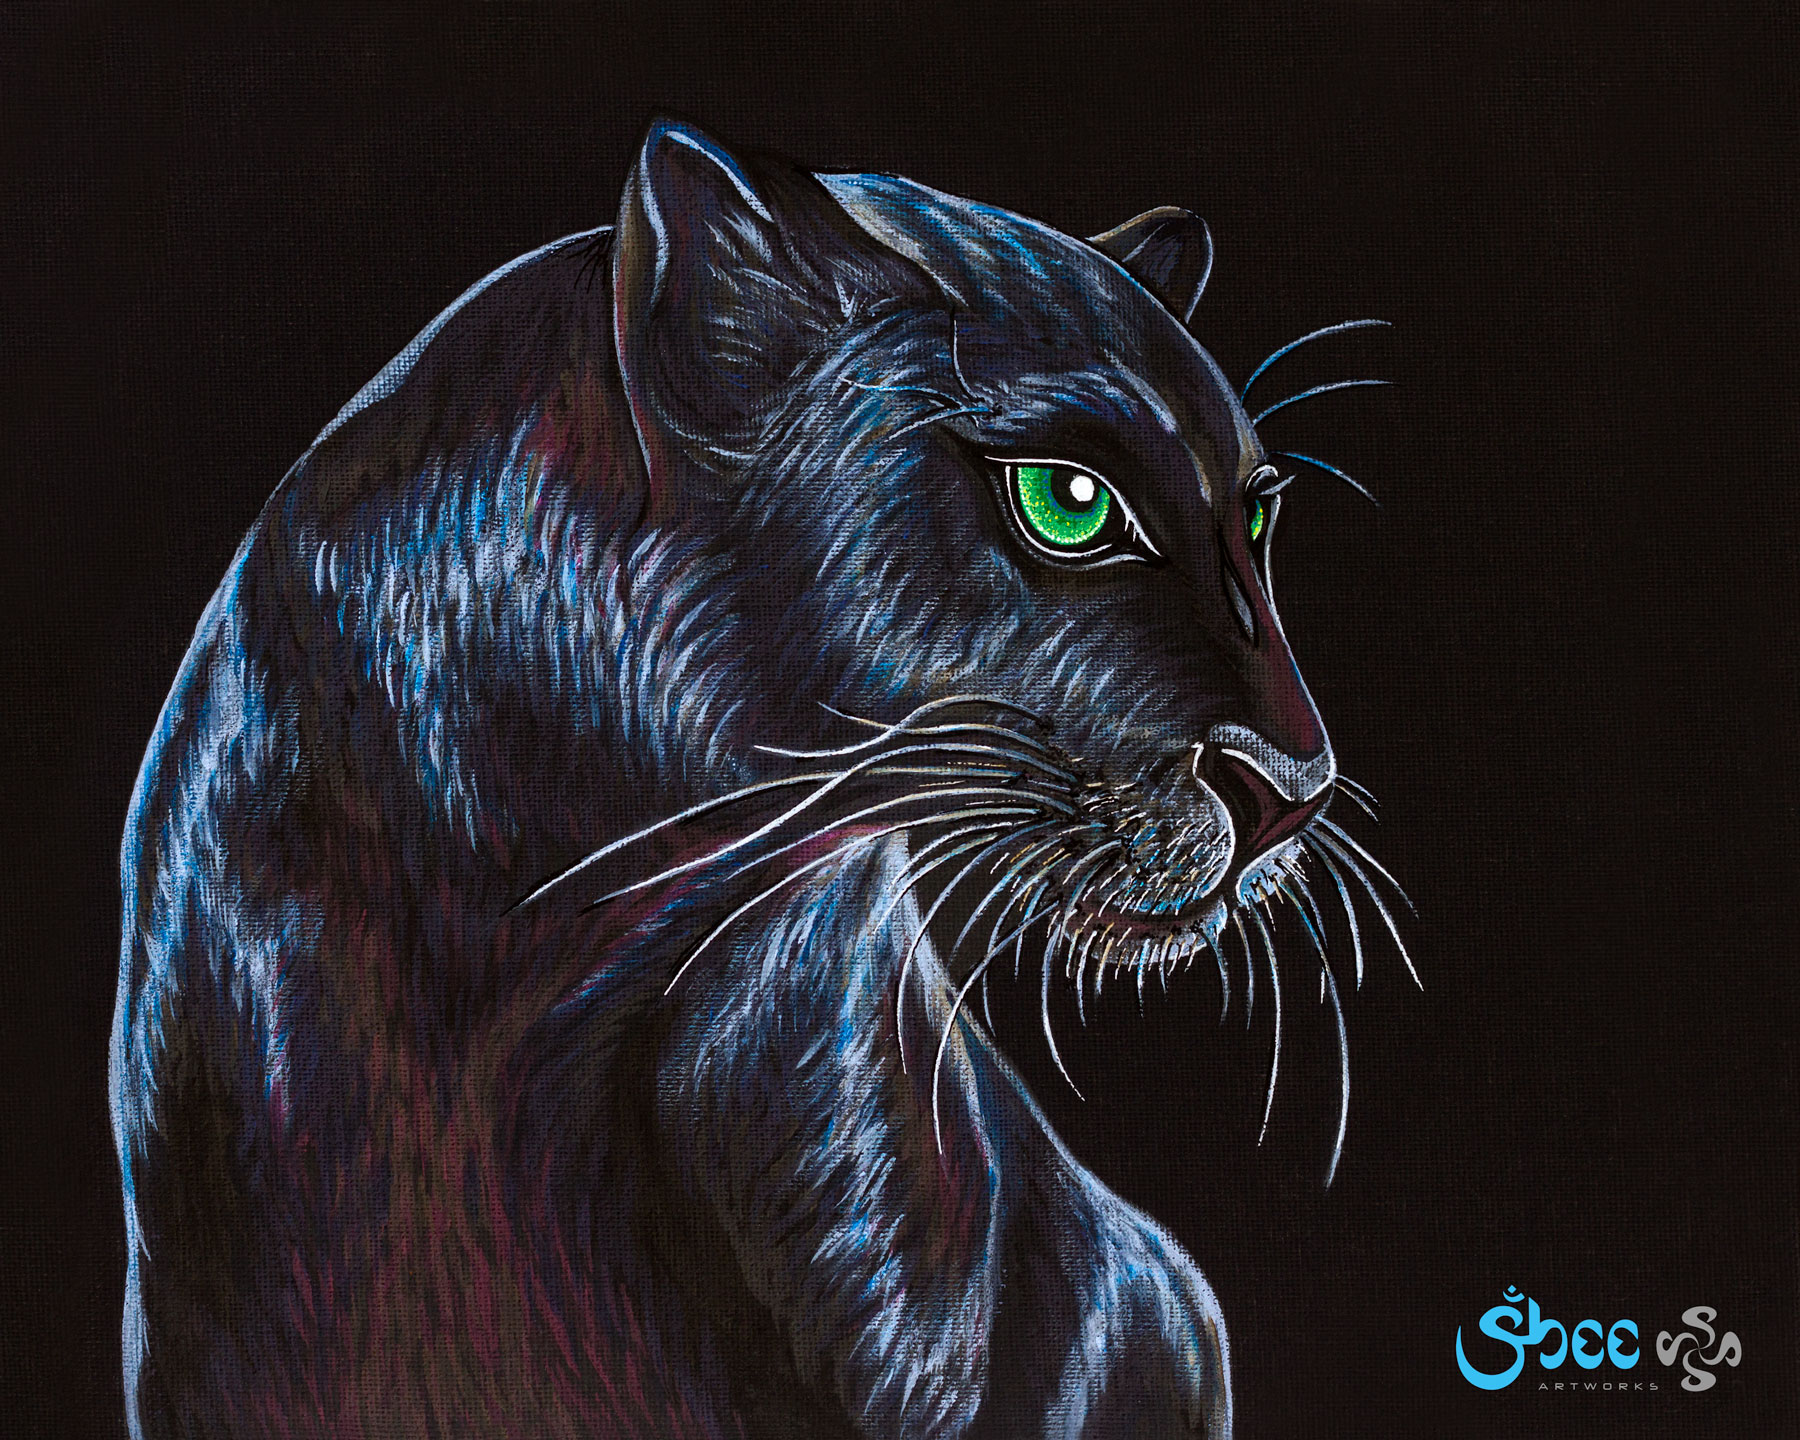 Retro Black Panther - acrylic on canvas - 35 x 28 cm